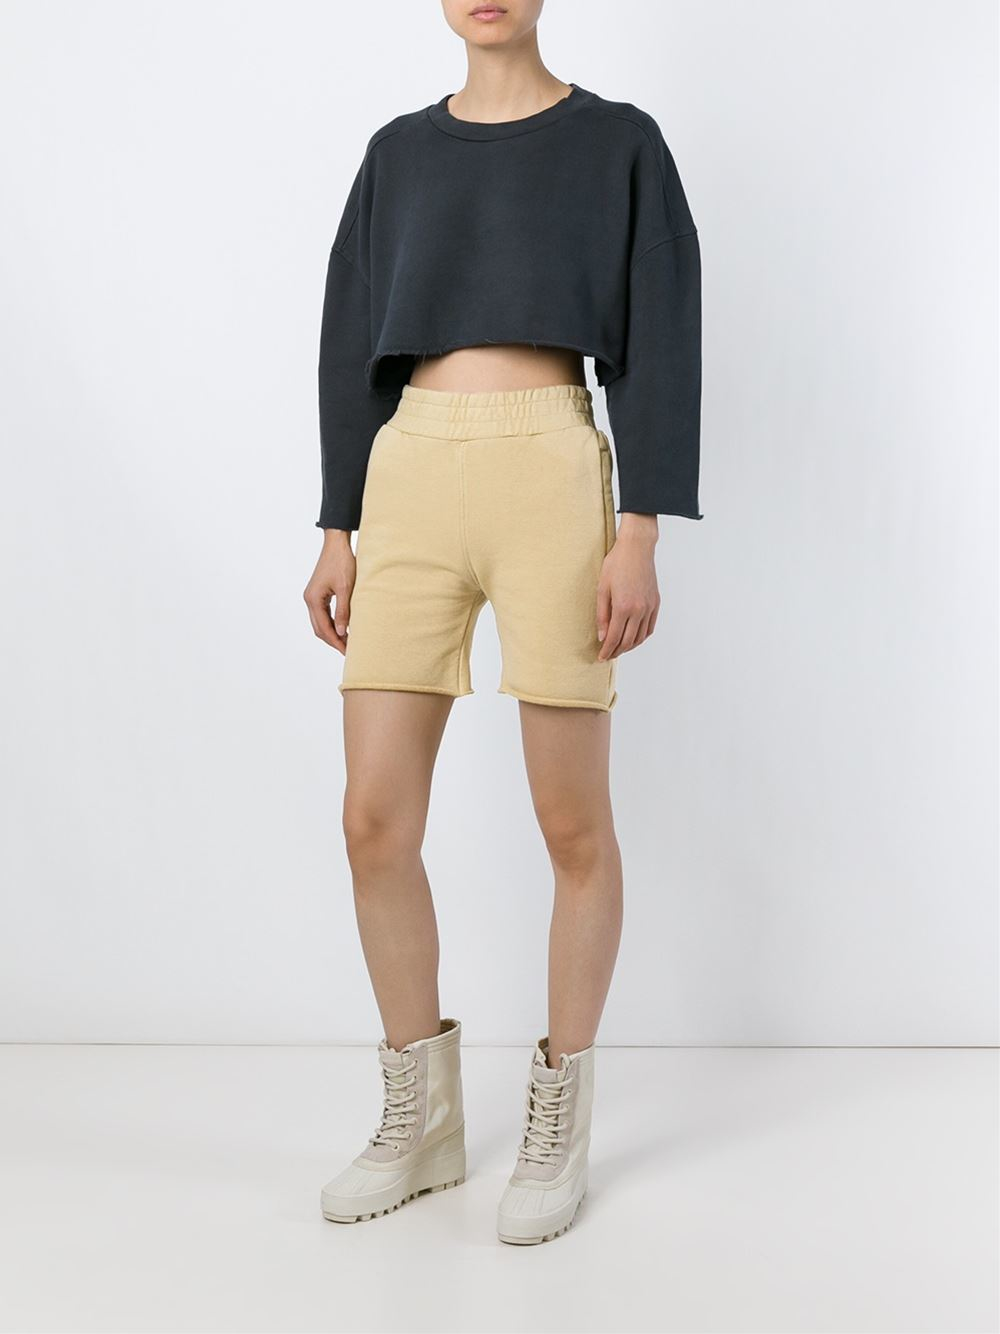 yeezy adidas originals by kanye west track shorts in